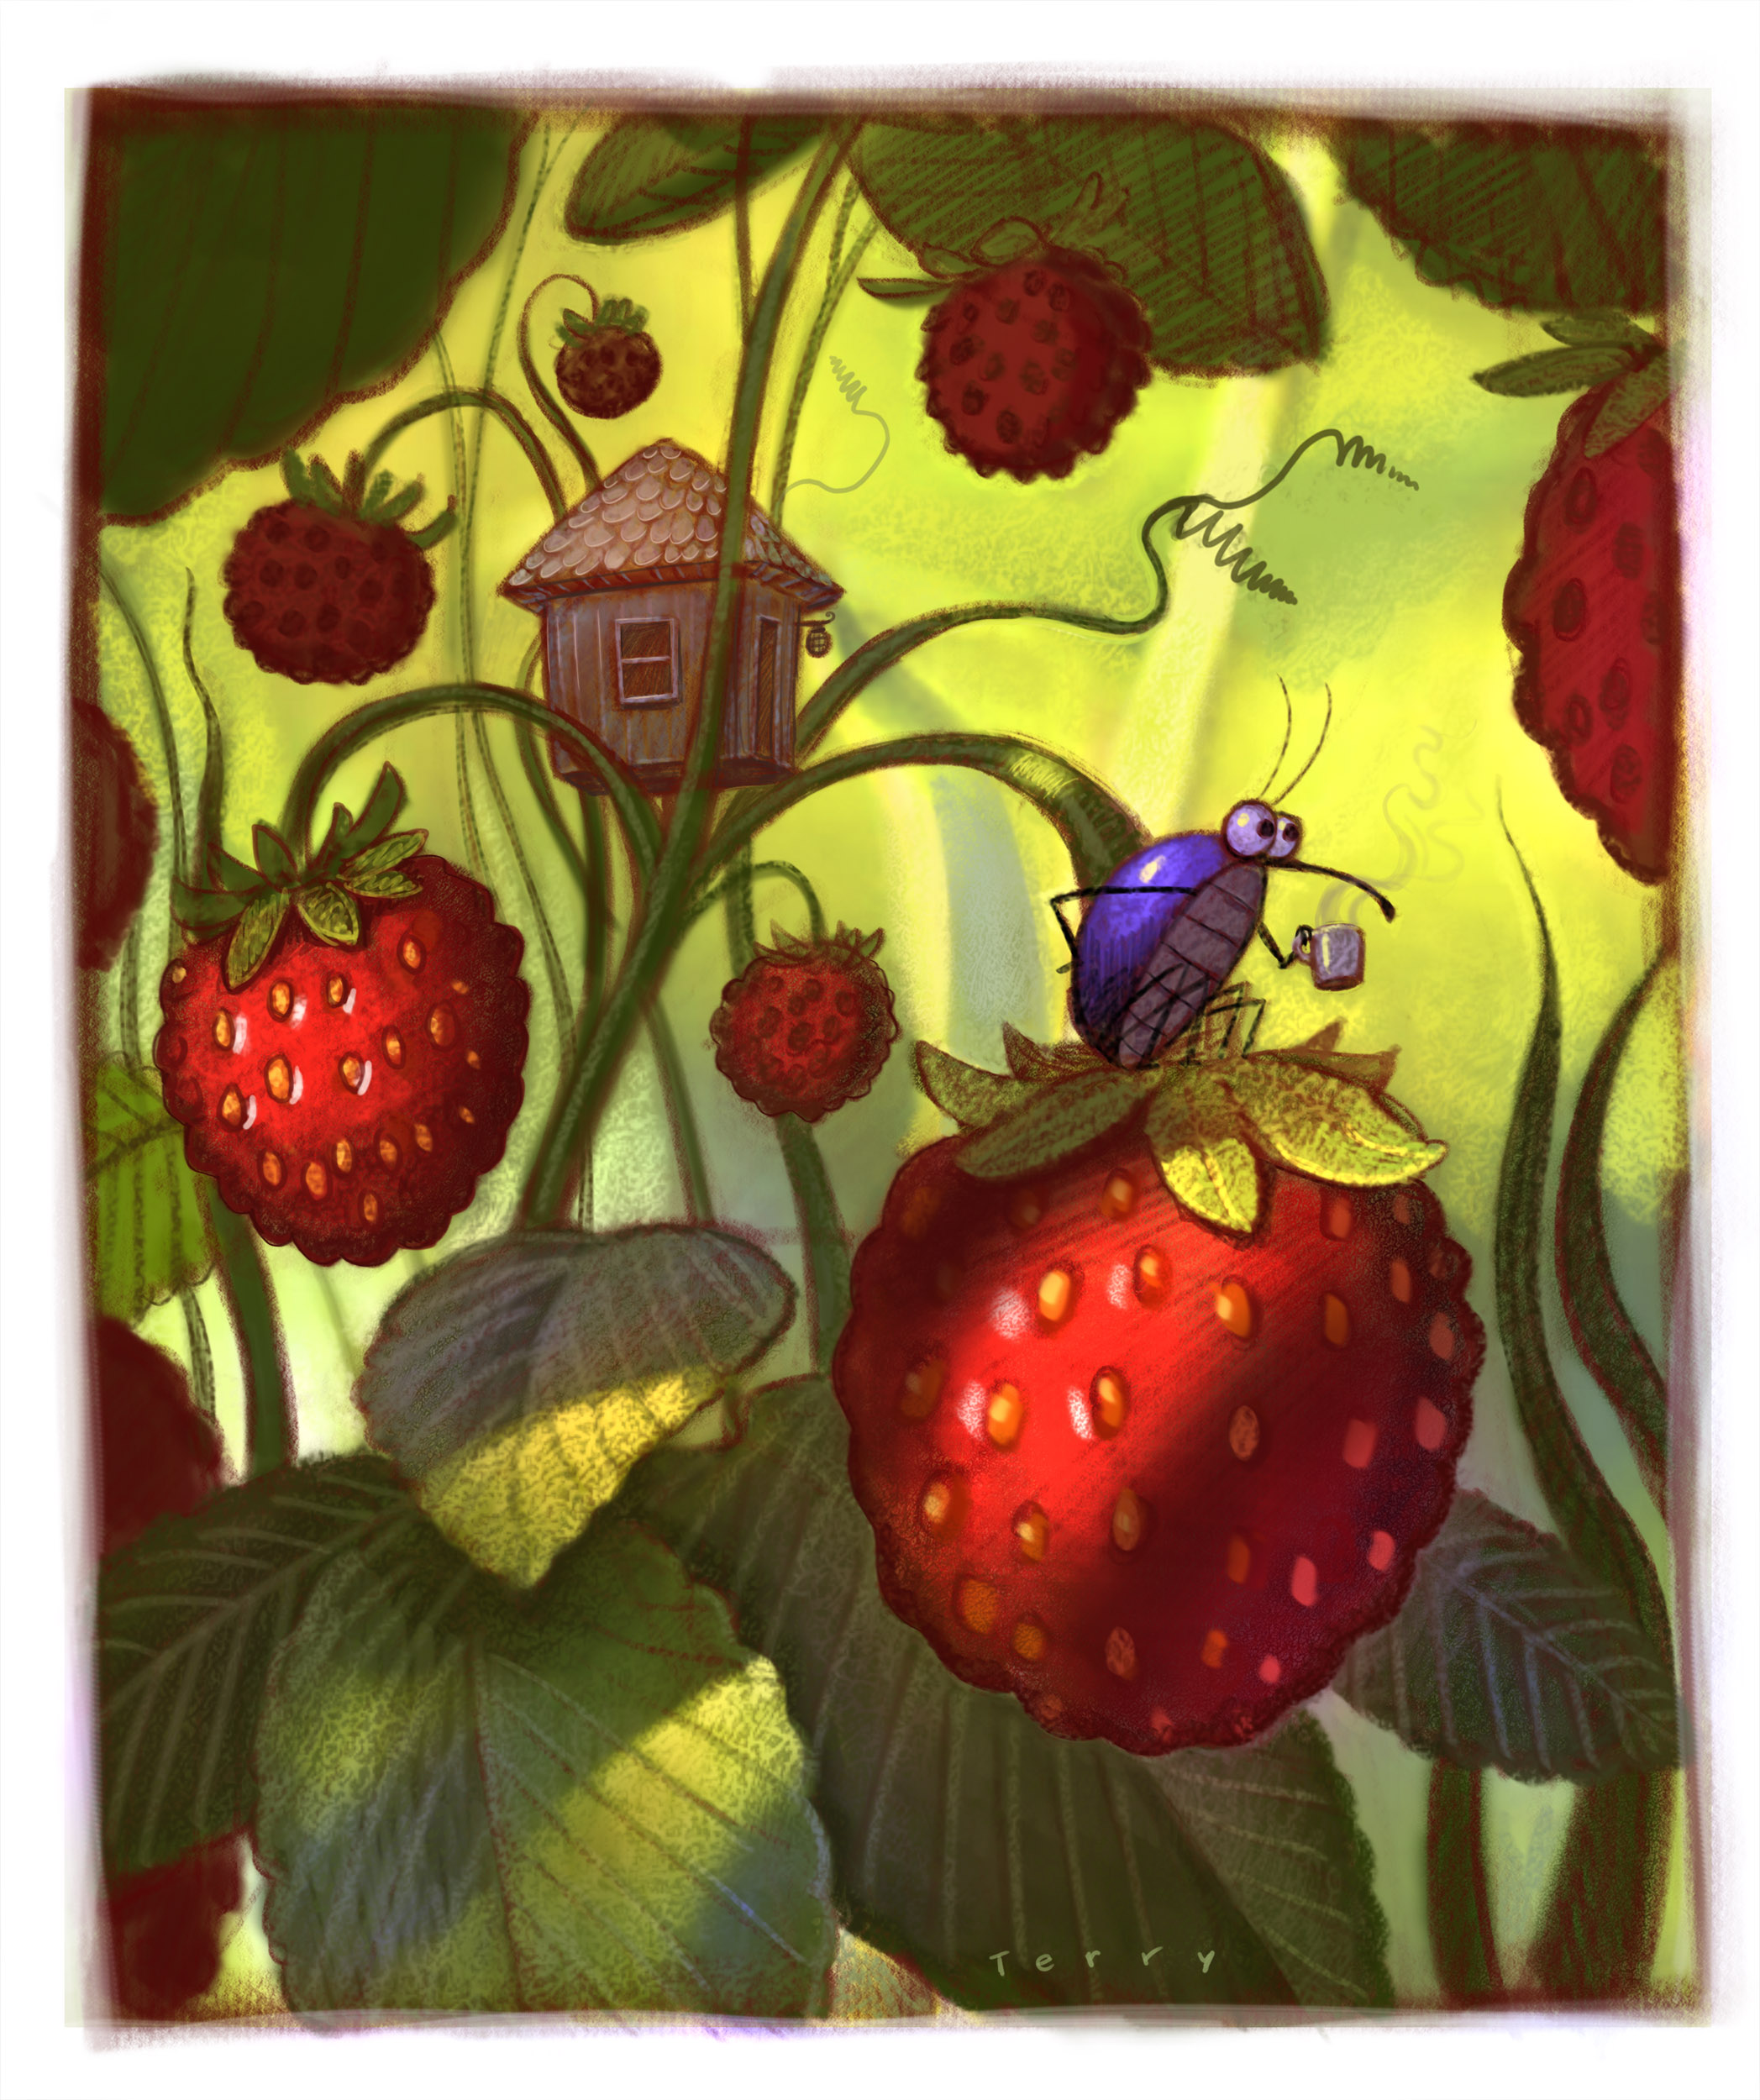 0_1497368861717_Strawberry TreehouseMD.jpg